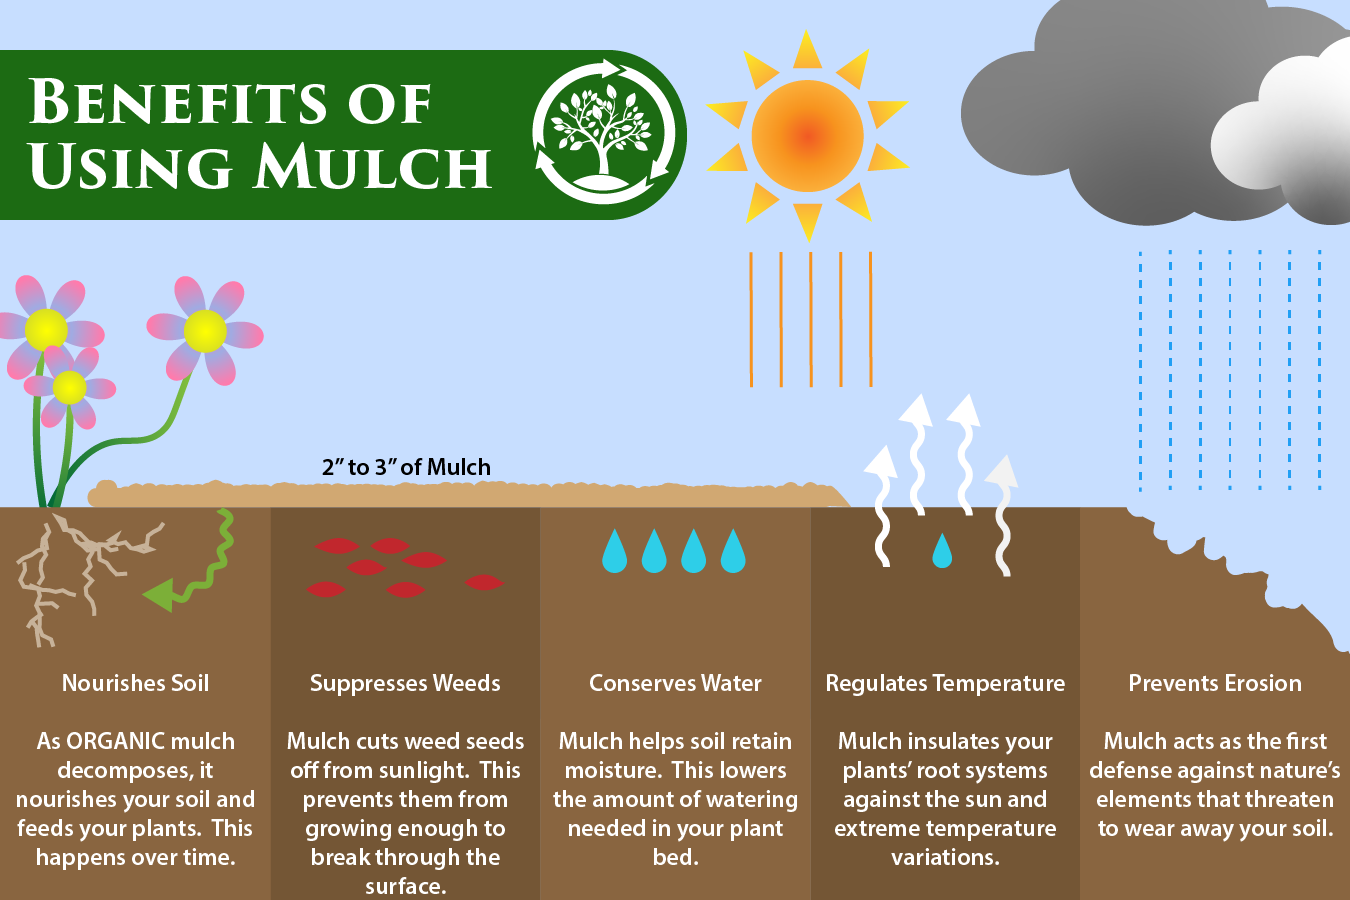 benefits of mulch, infographic, four benefits